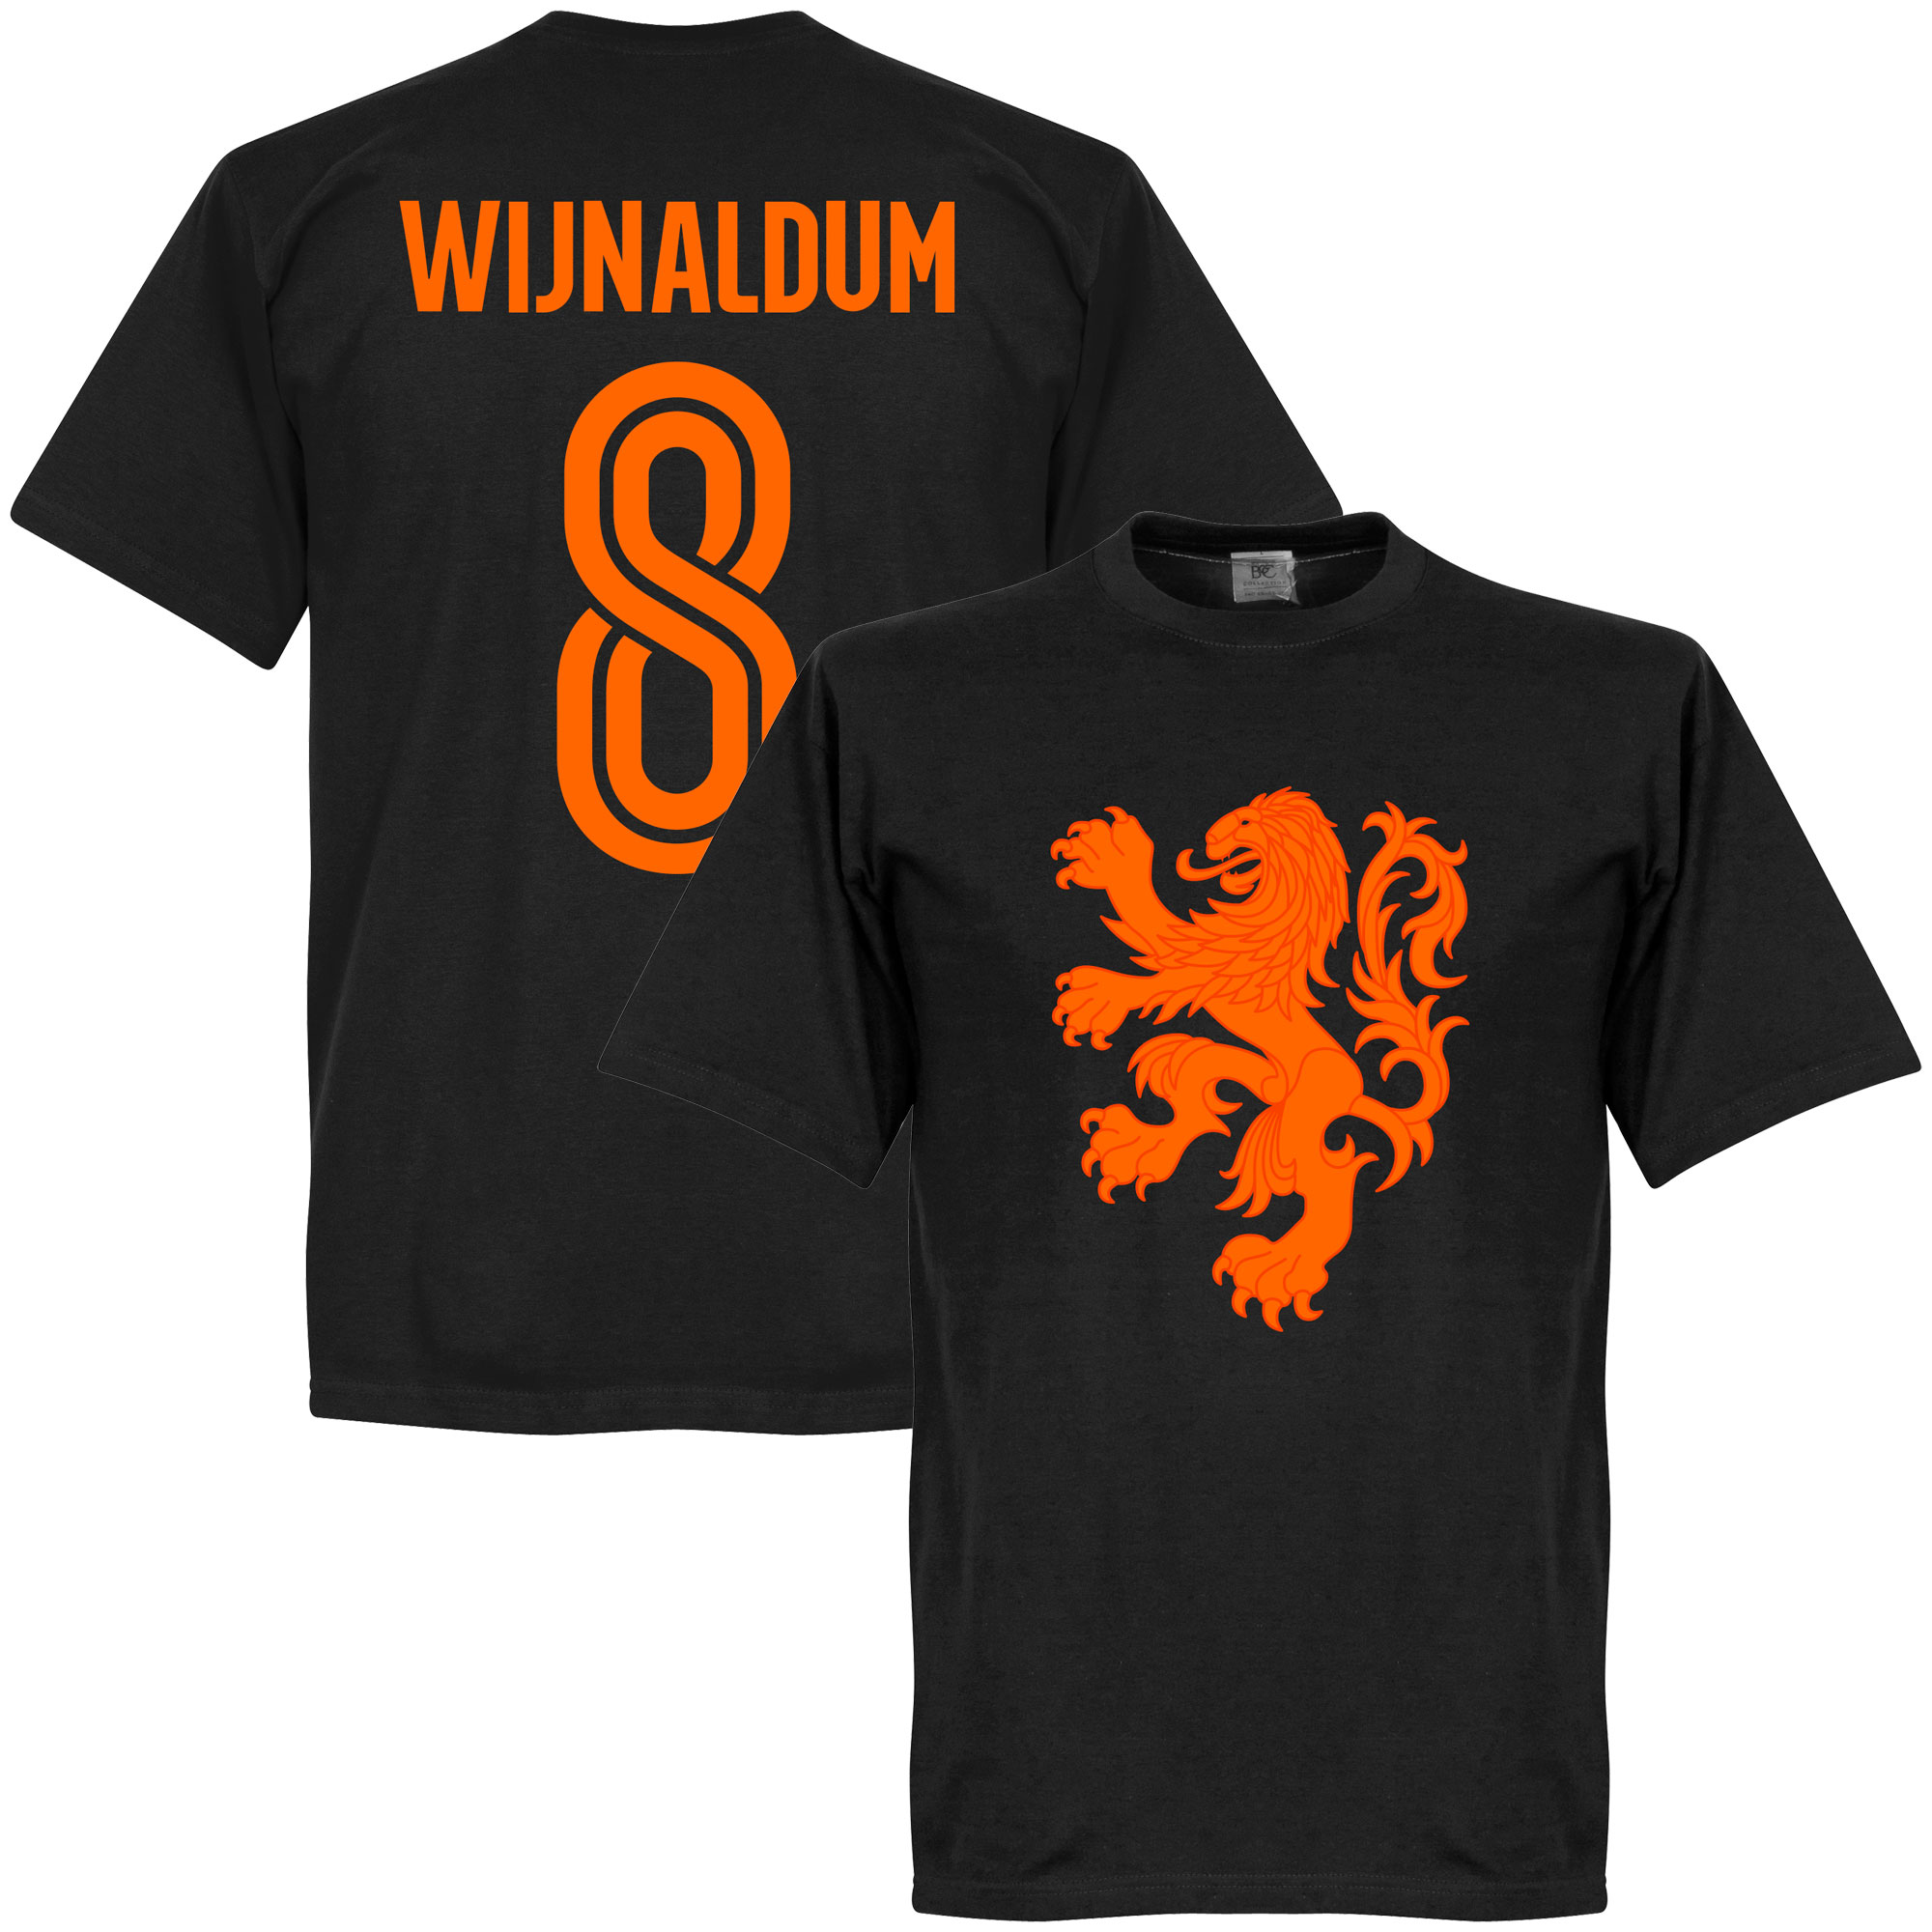 Holland Wijnaldum Lion Tee - Black - XL